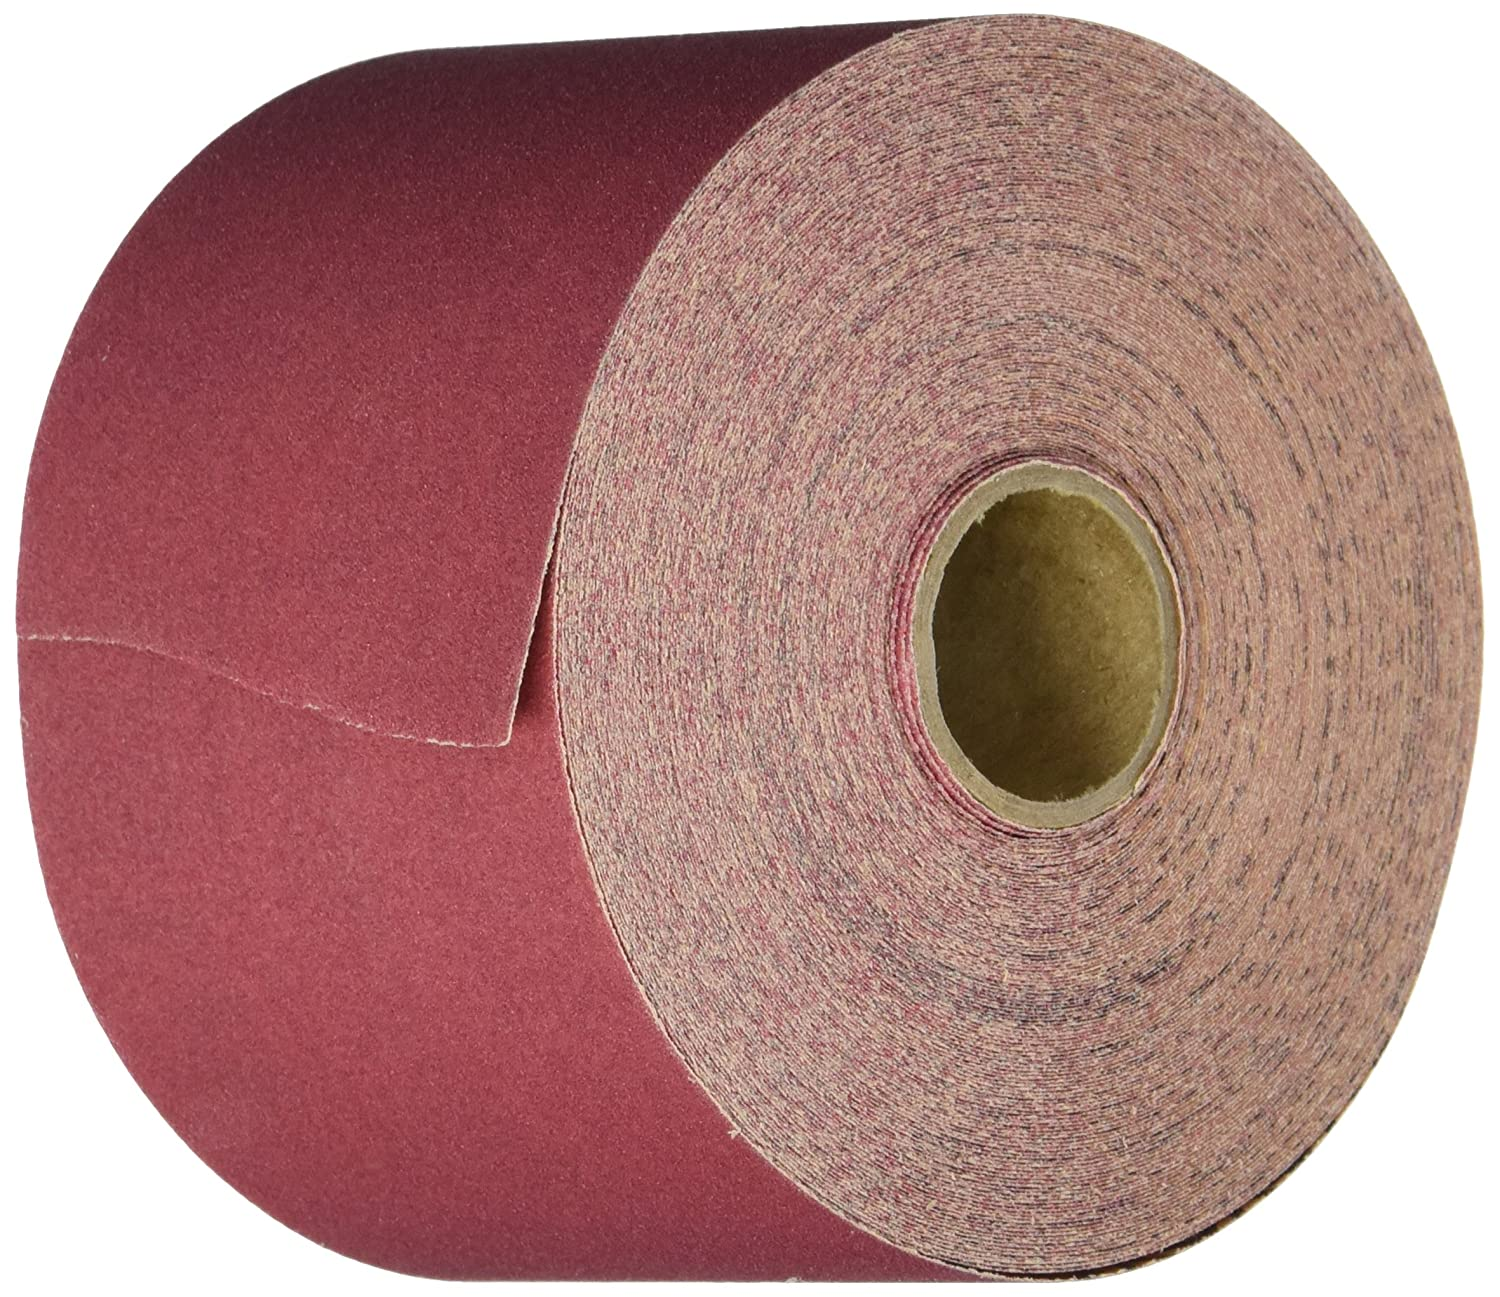 80 Grit 1 Width x 25 yds Length Lincoln Electric KH265 Abrasive Roll Aluminum Oxide Emery Cloth Backing Pack of 1